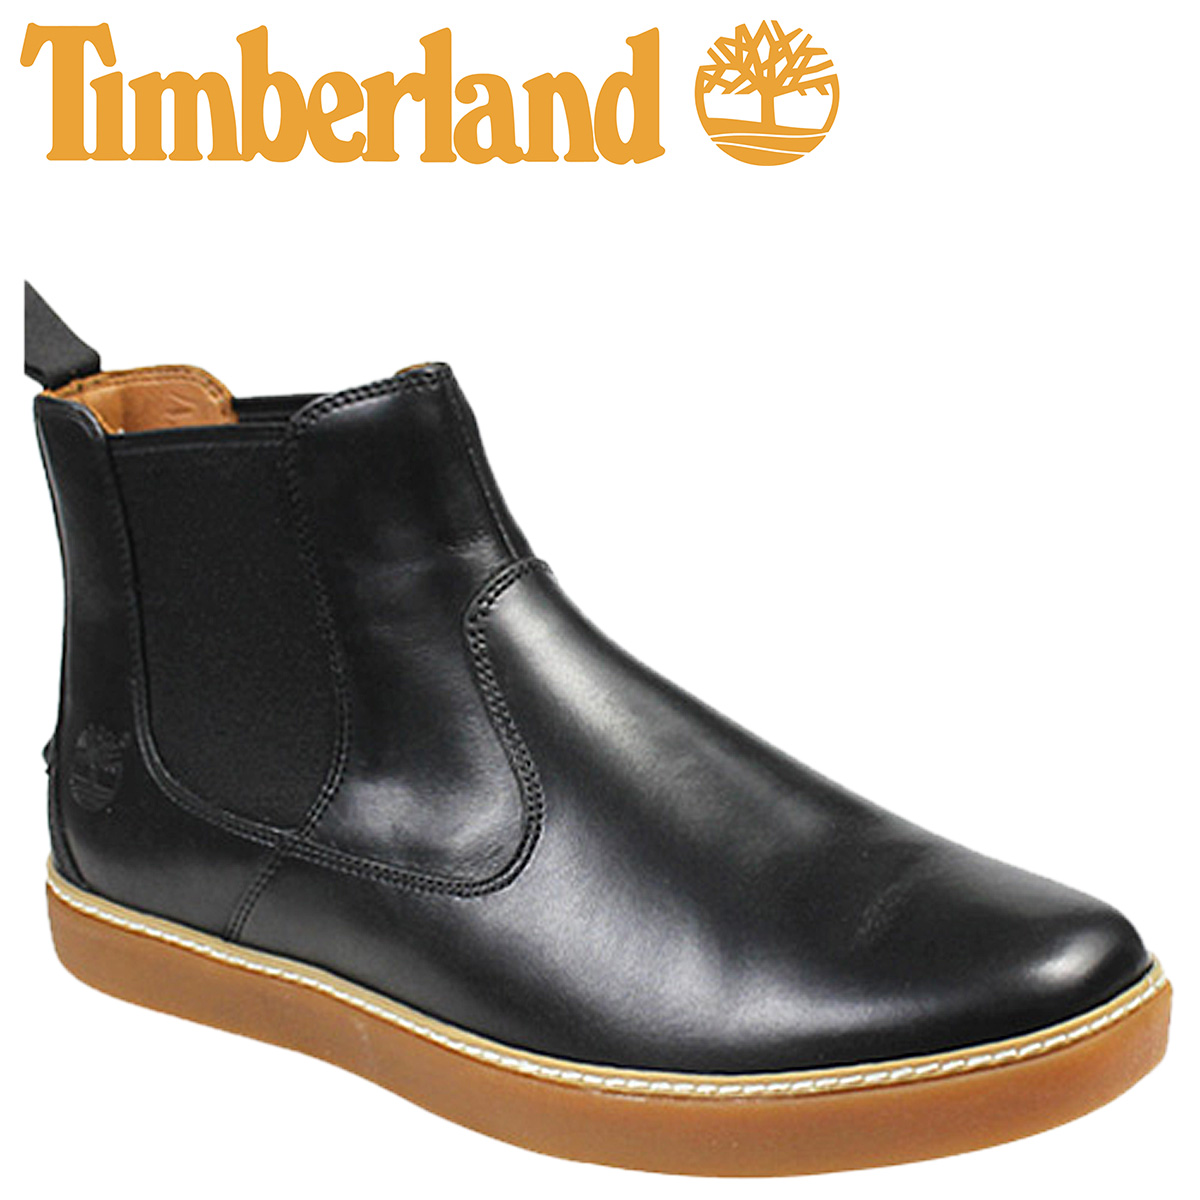 eb752b4c0cb5 ALLSPORTS  Timberland Timberland Earthkeepers headstone Chelsea boots  EARTHKEEPERS HUDSTON CHELSEA SHOES leather men s 9652A black  10   9 new in  stock  ...